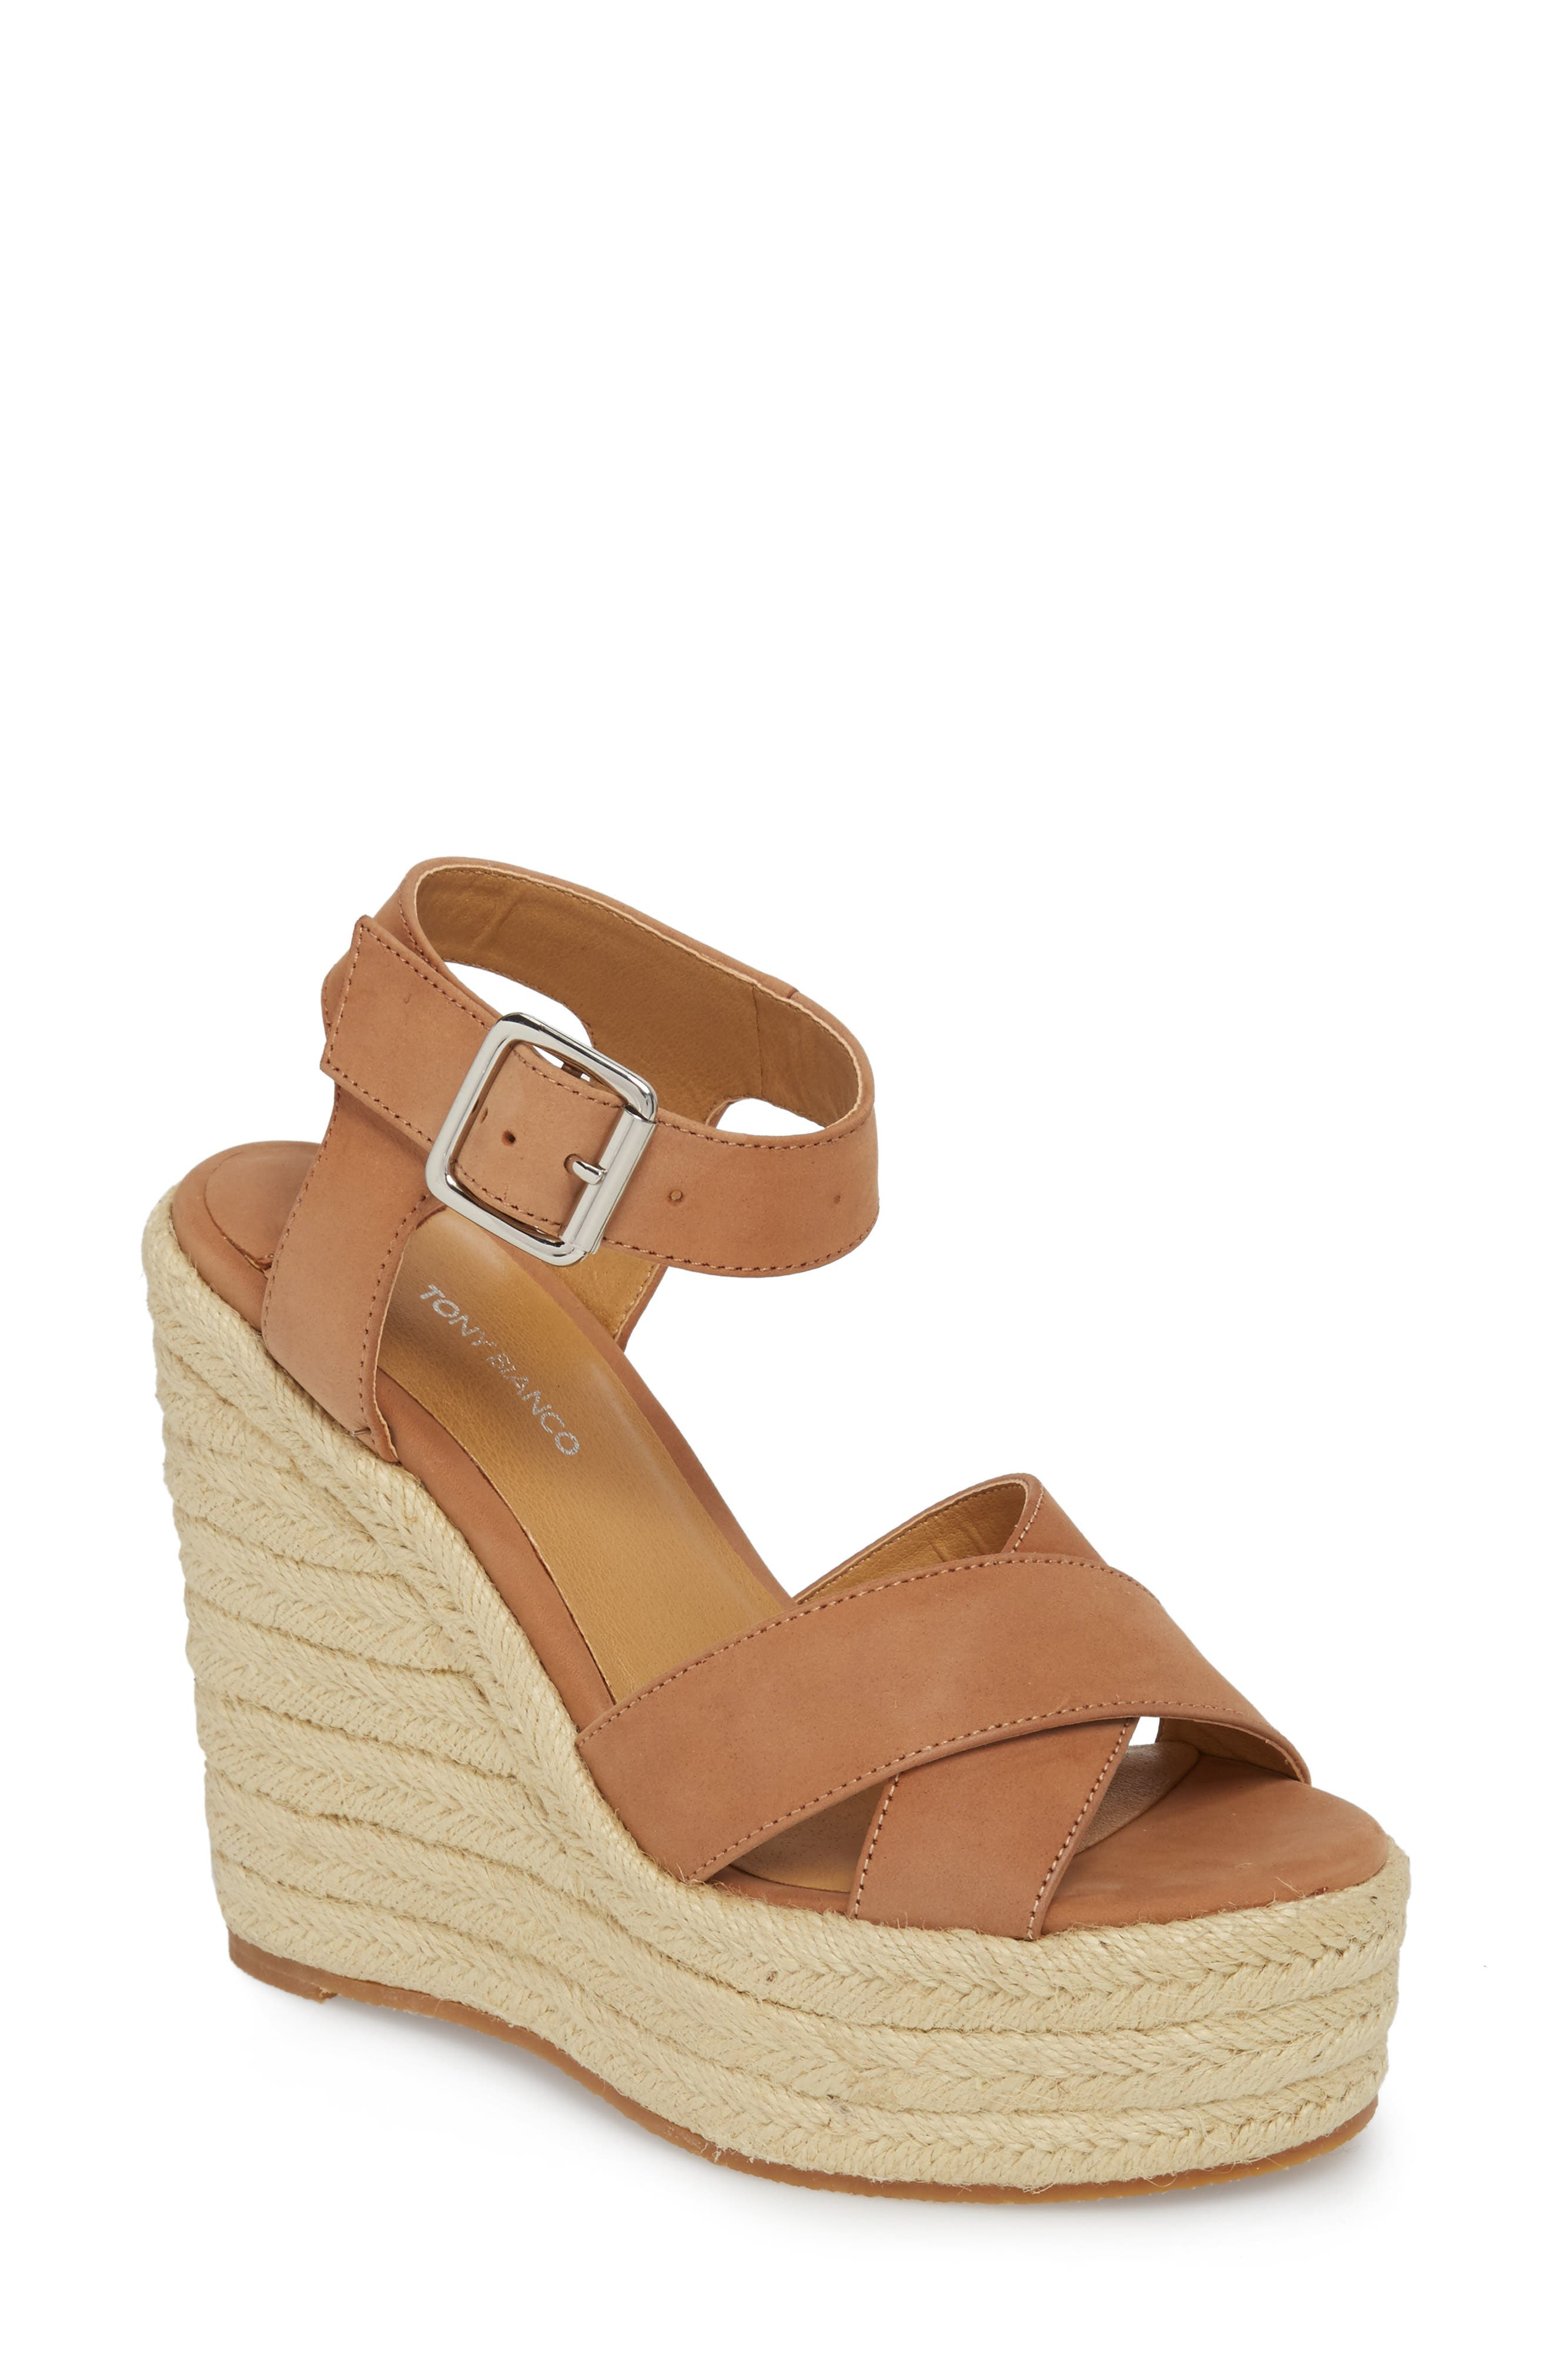 Boston Espadrille Wedge Sandal,                             Main thumbnail 1, color,                             CARAMEL PHOENIX LEATHER